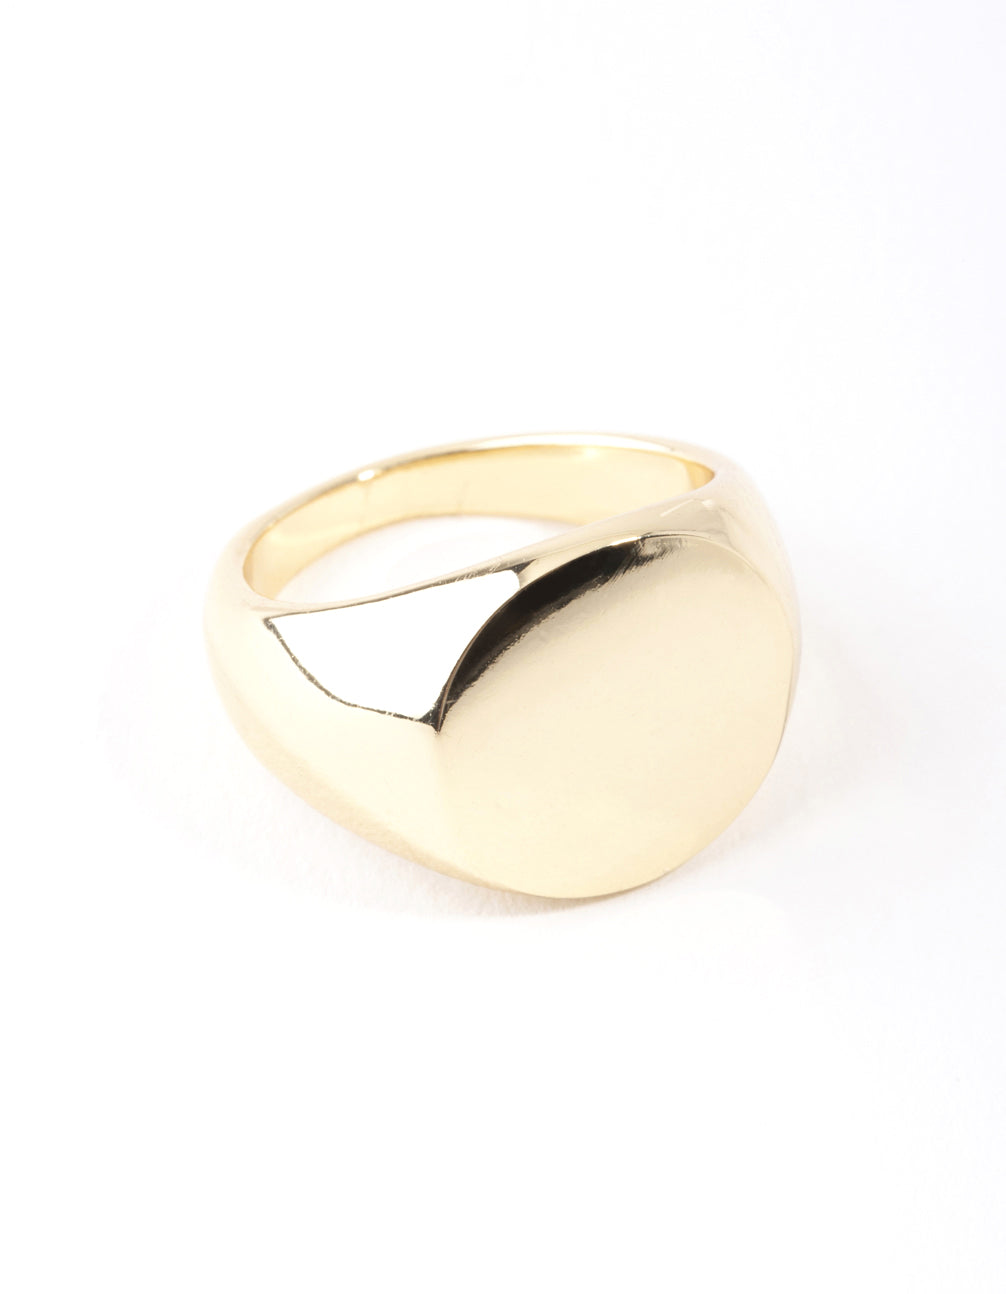 Real Gold Plated Plain Signet Ring